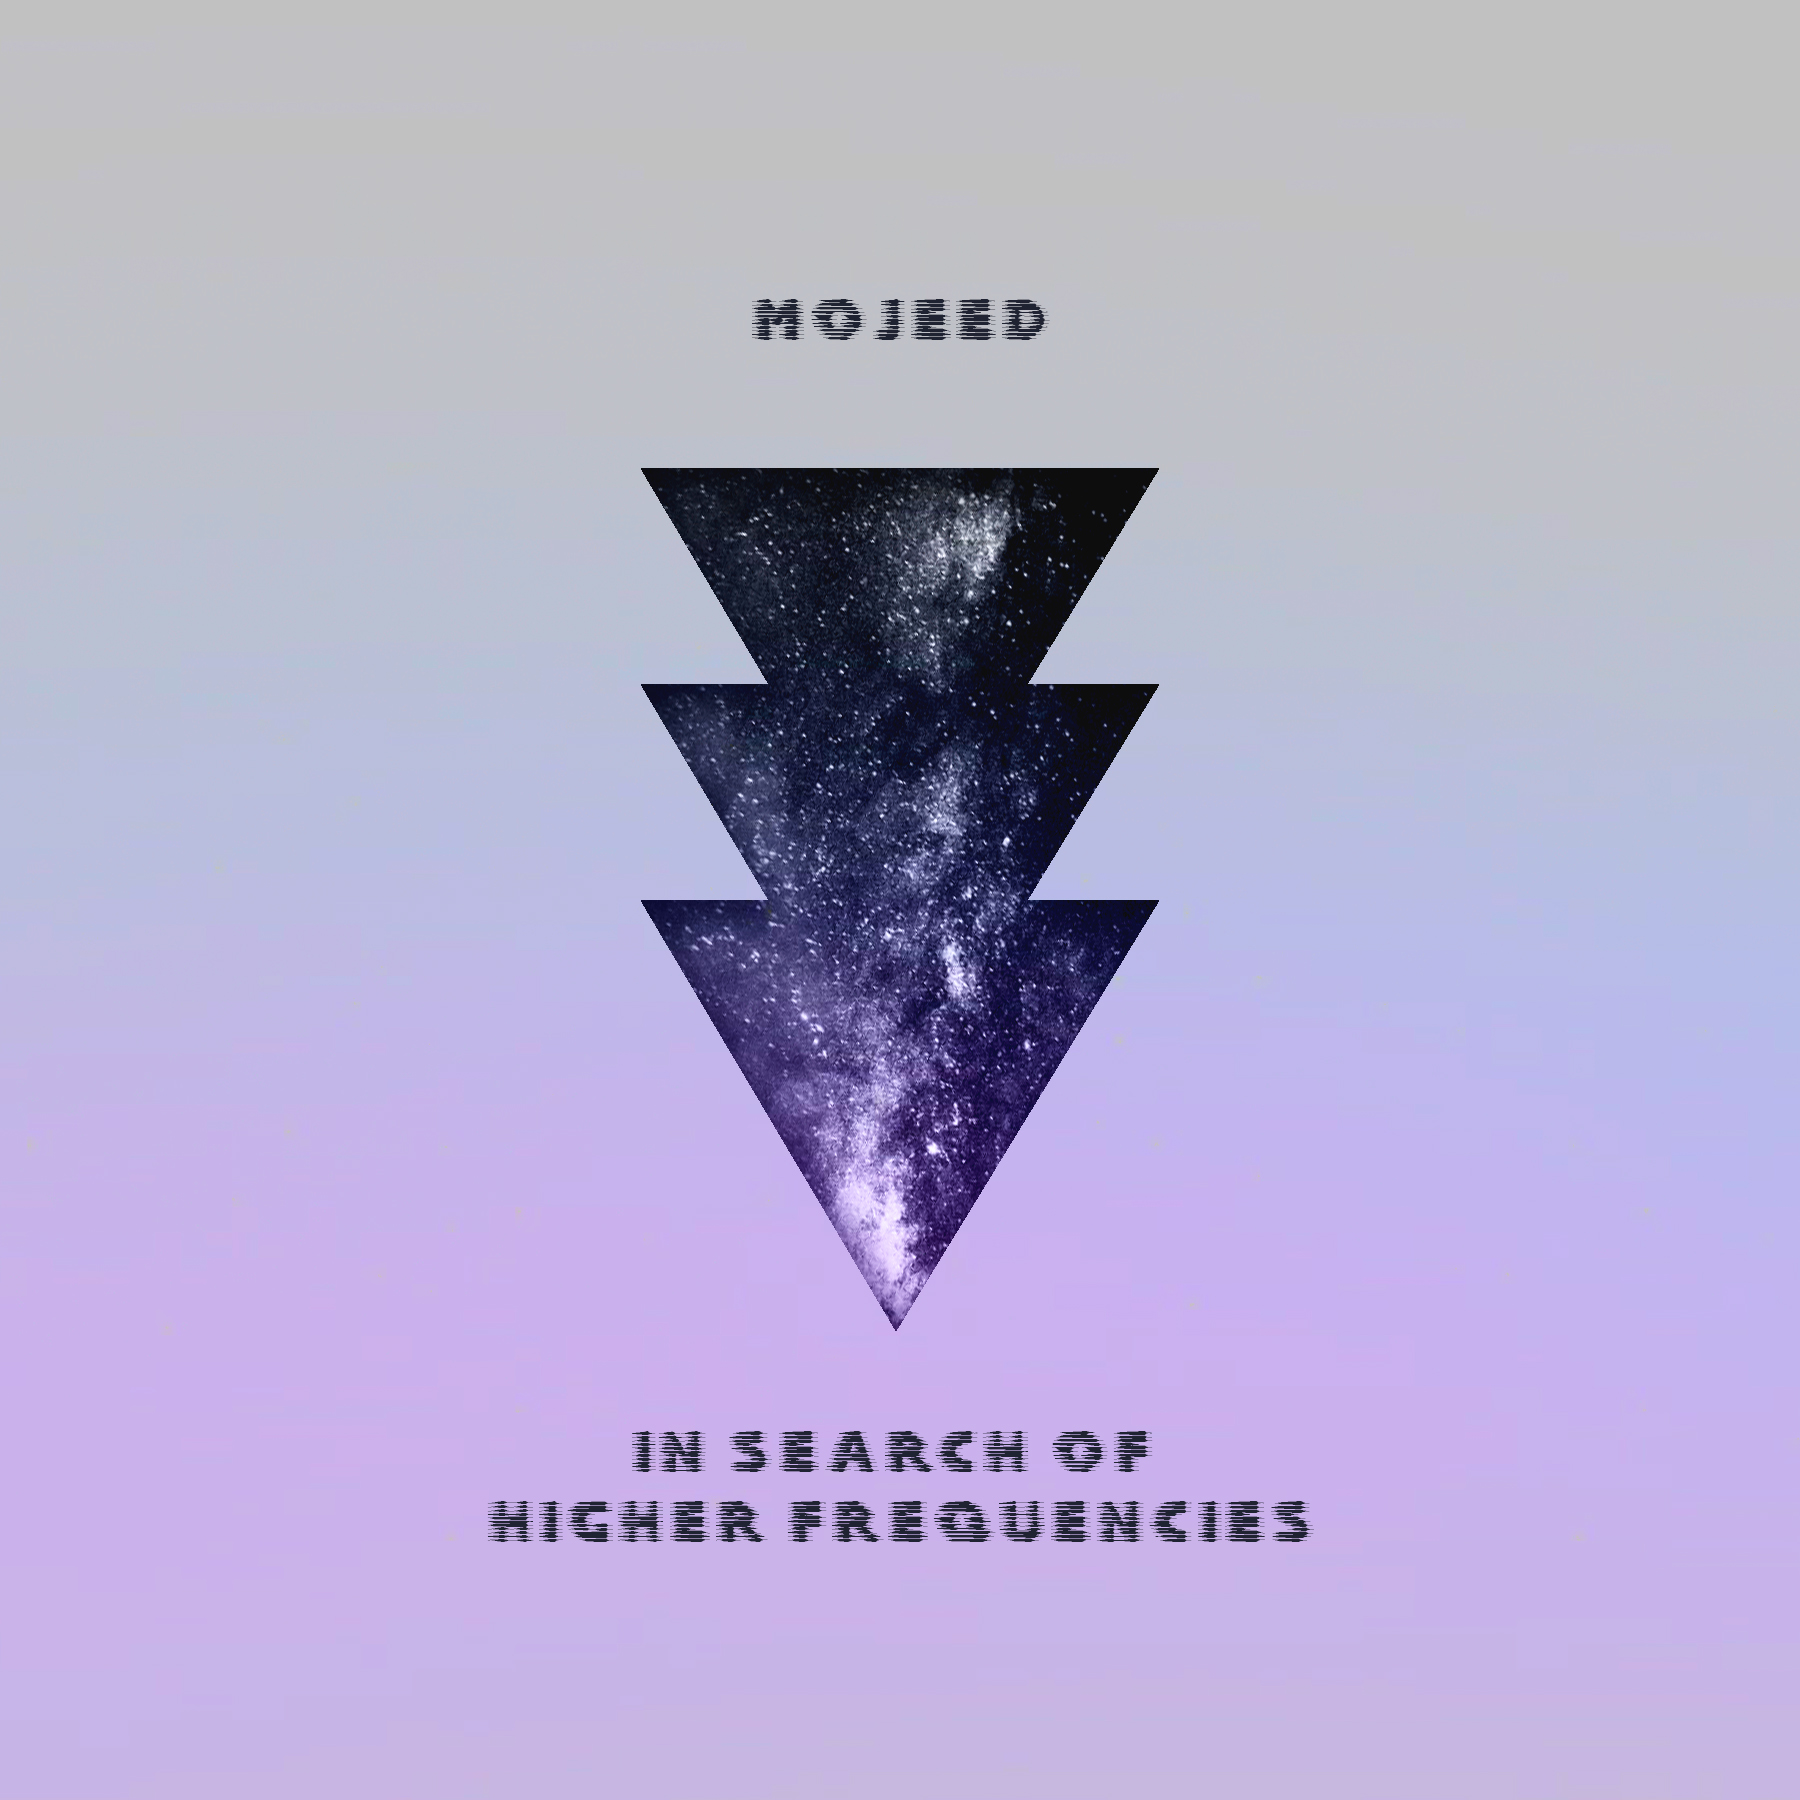 in search of higher frequencies - Album cover artwork for Mojeed